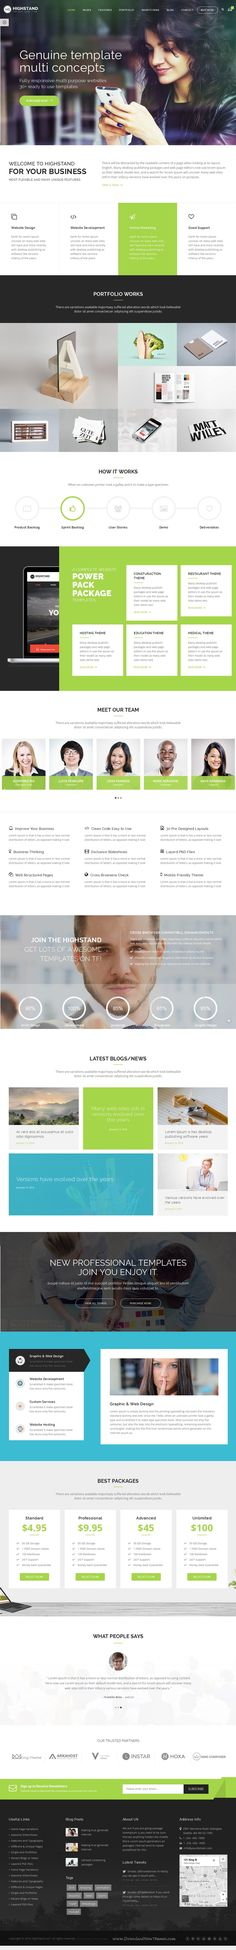 Highstand is simple, clean and Professional Responsive WordPress #theme for #multipurpose #websites. It has wonderful 30 Different Home Pages style and amazing features.